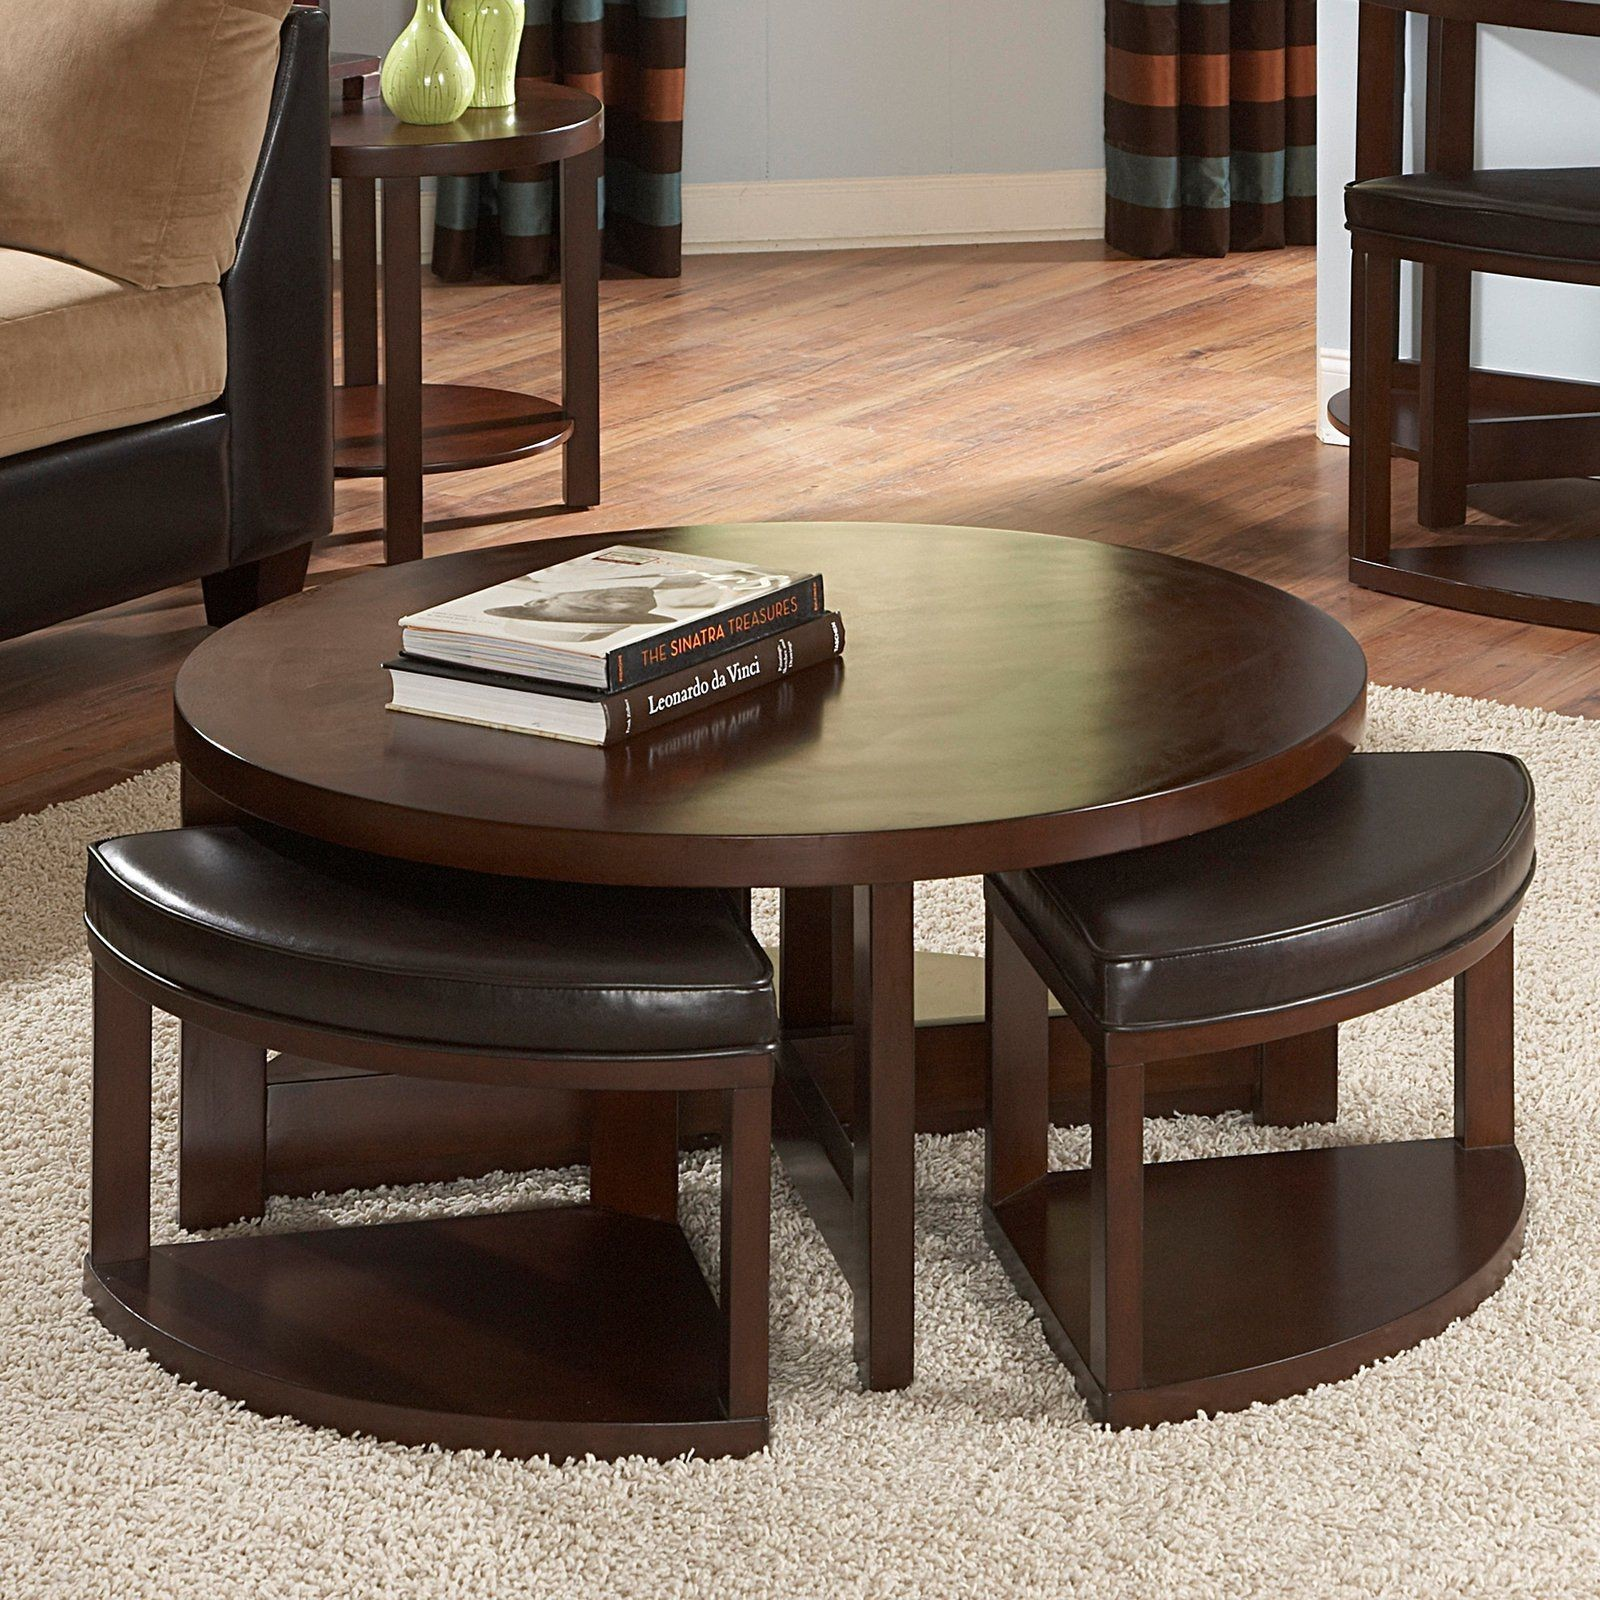 Awesome Round Coffee Table With Stools 4